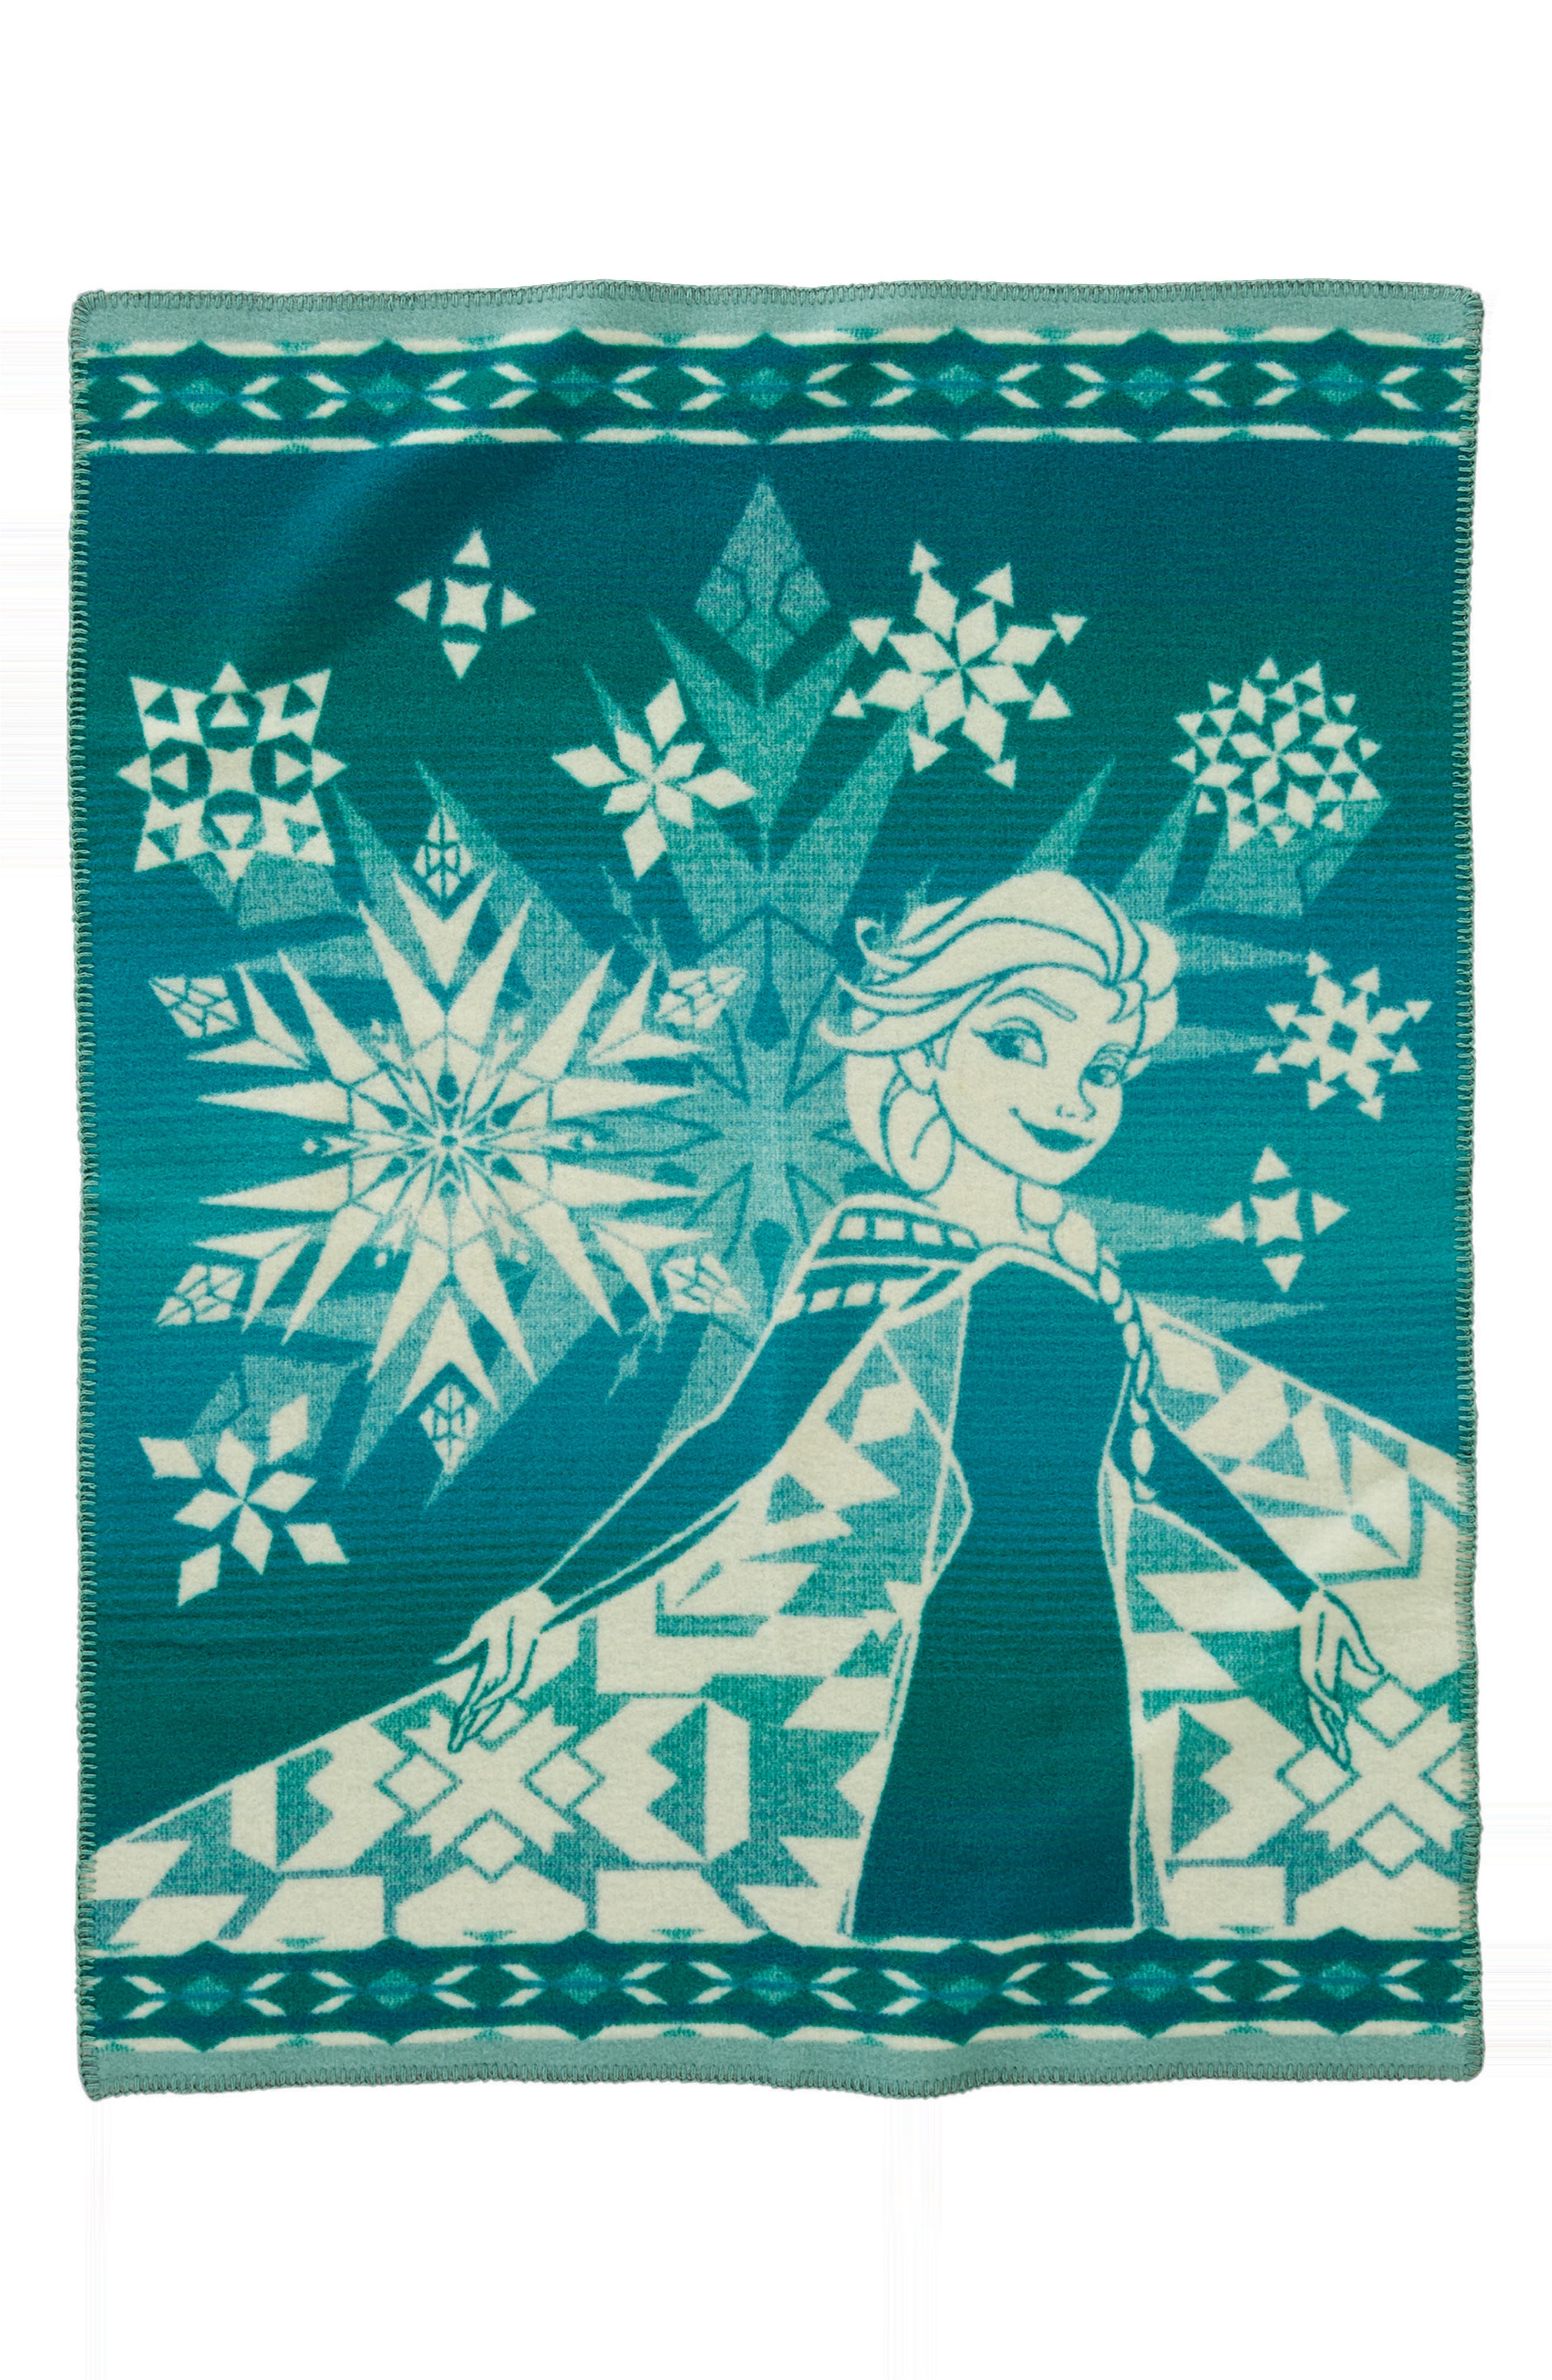 Elsa's Courage Blanket Throw,                             Main thumbnail 1, color,                             GREEN